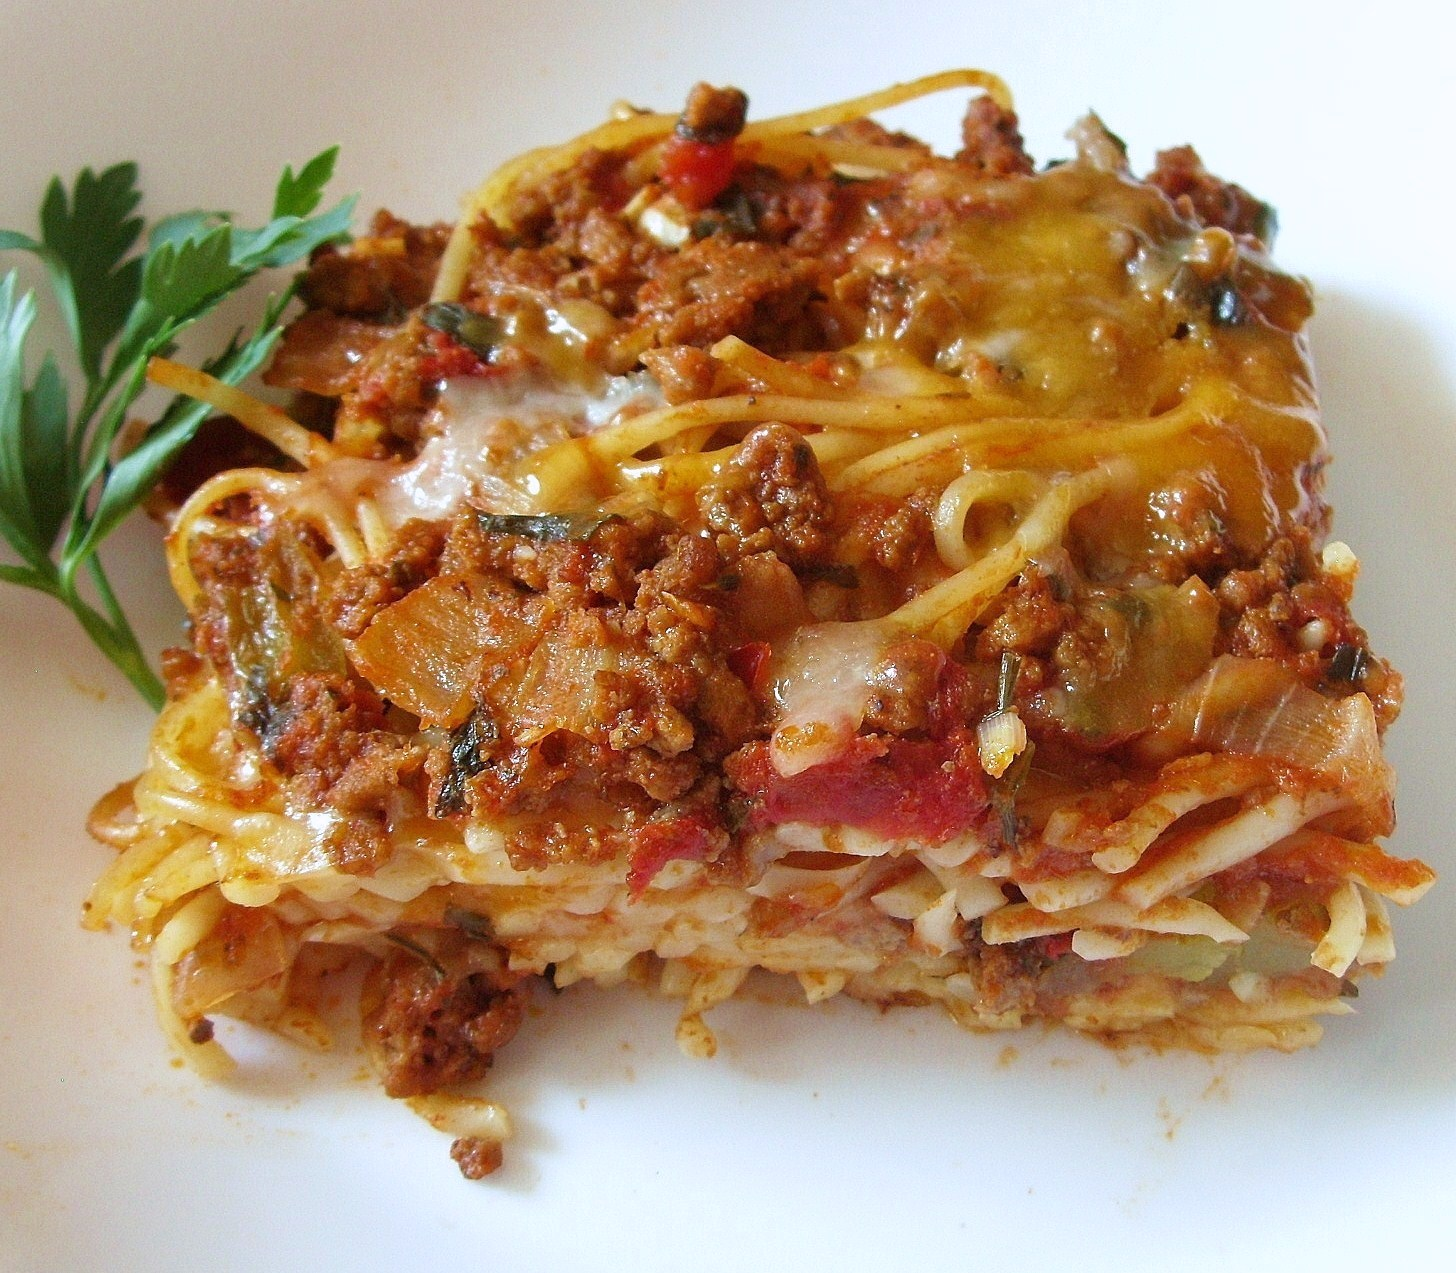 Sage Trifle: Paula Deen's Baked Spaghetti (A Re-post From